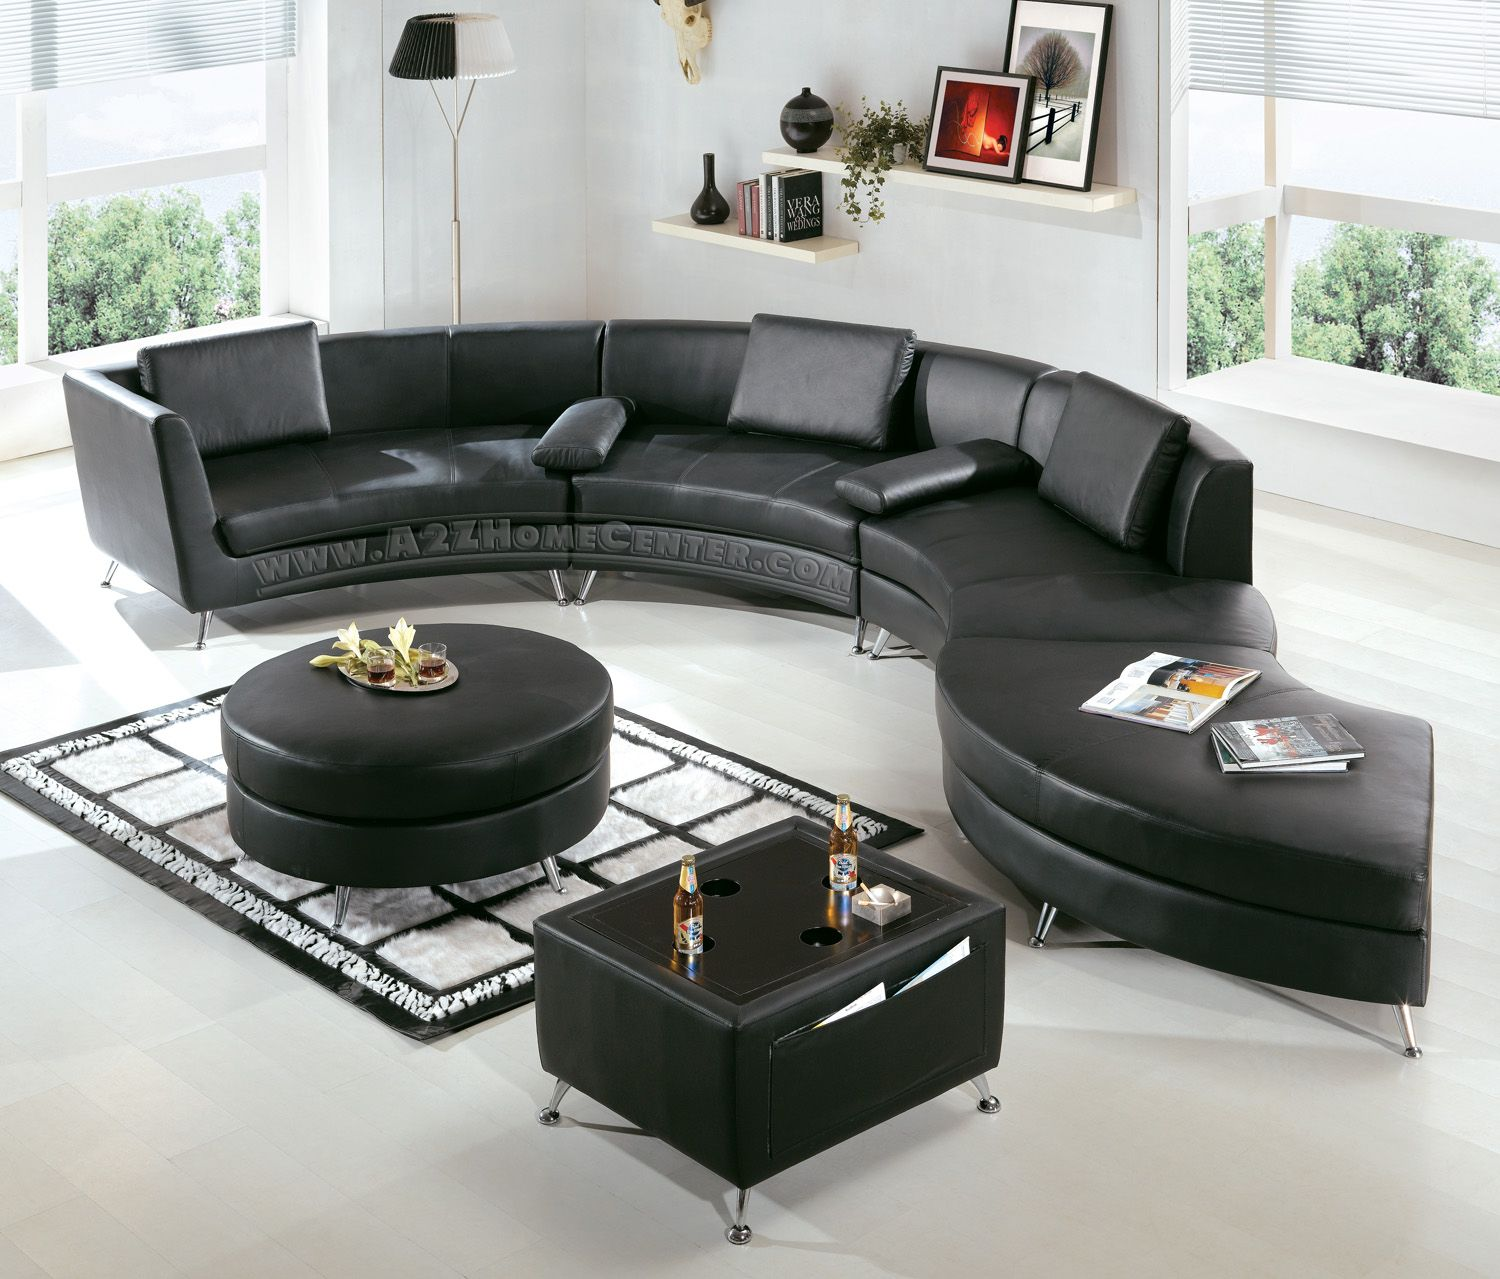 Living Room Modern Interior Furniture 1000 images about livingrooms color ideas on pinterest modern living room furniture rooms and designs